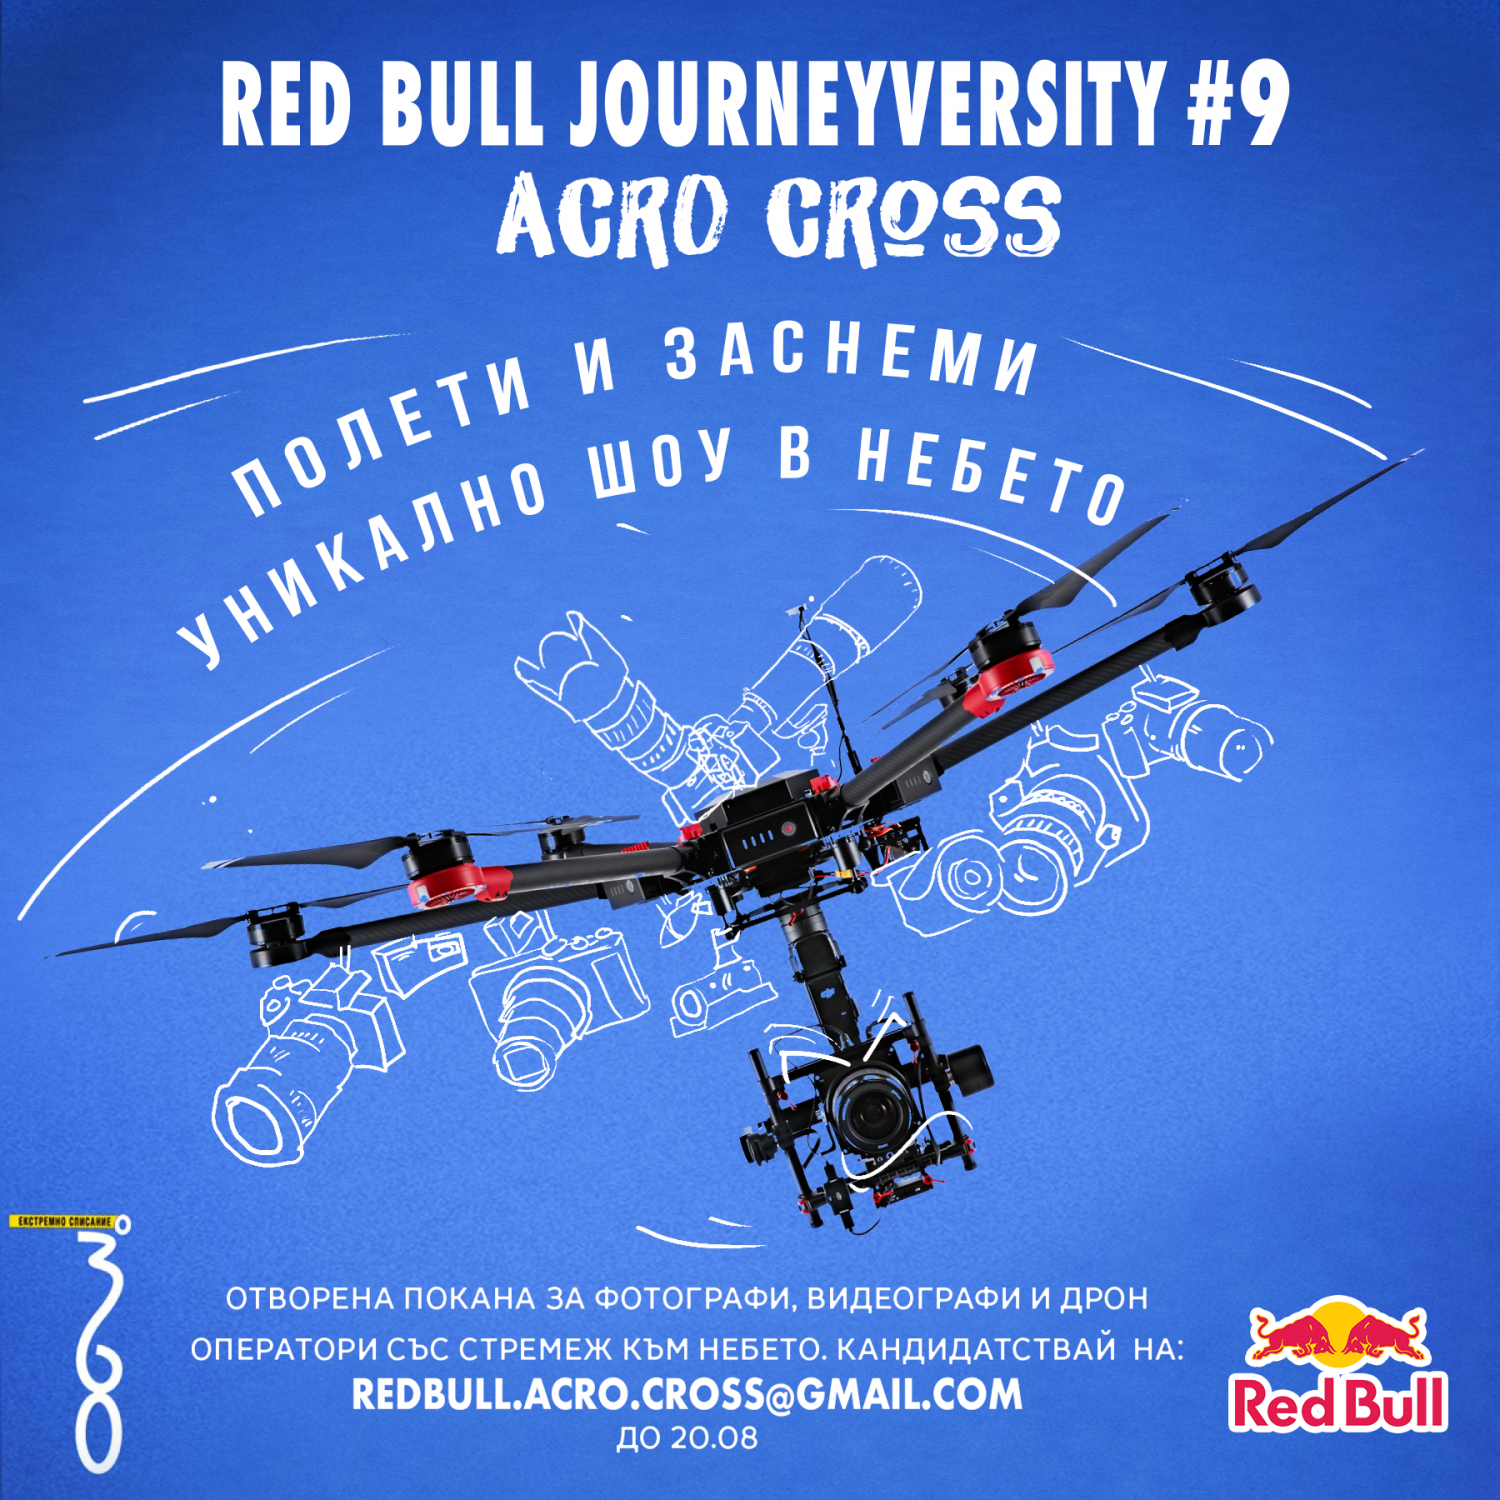 Red Bull Journeyversity